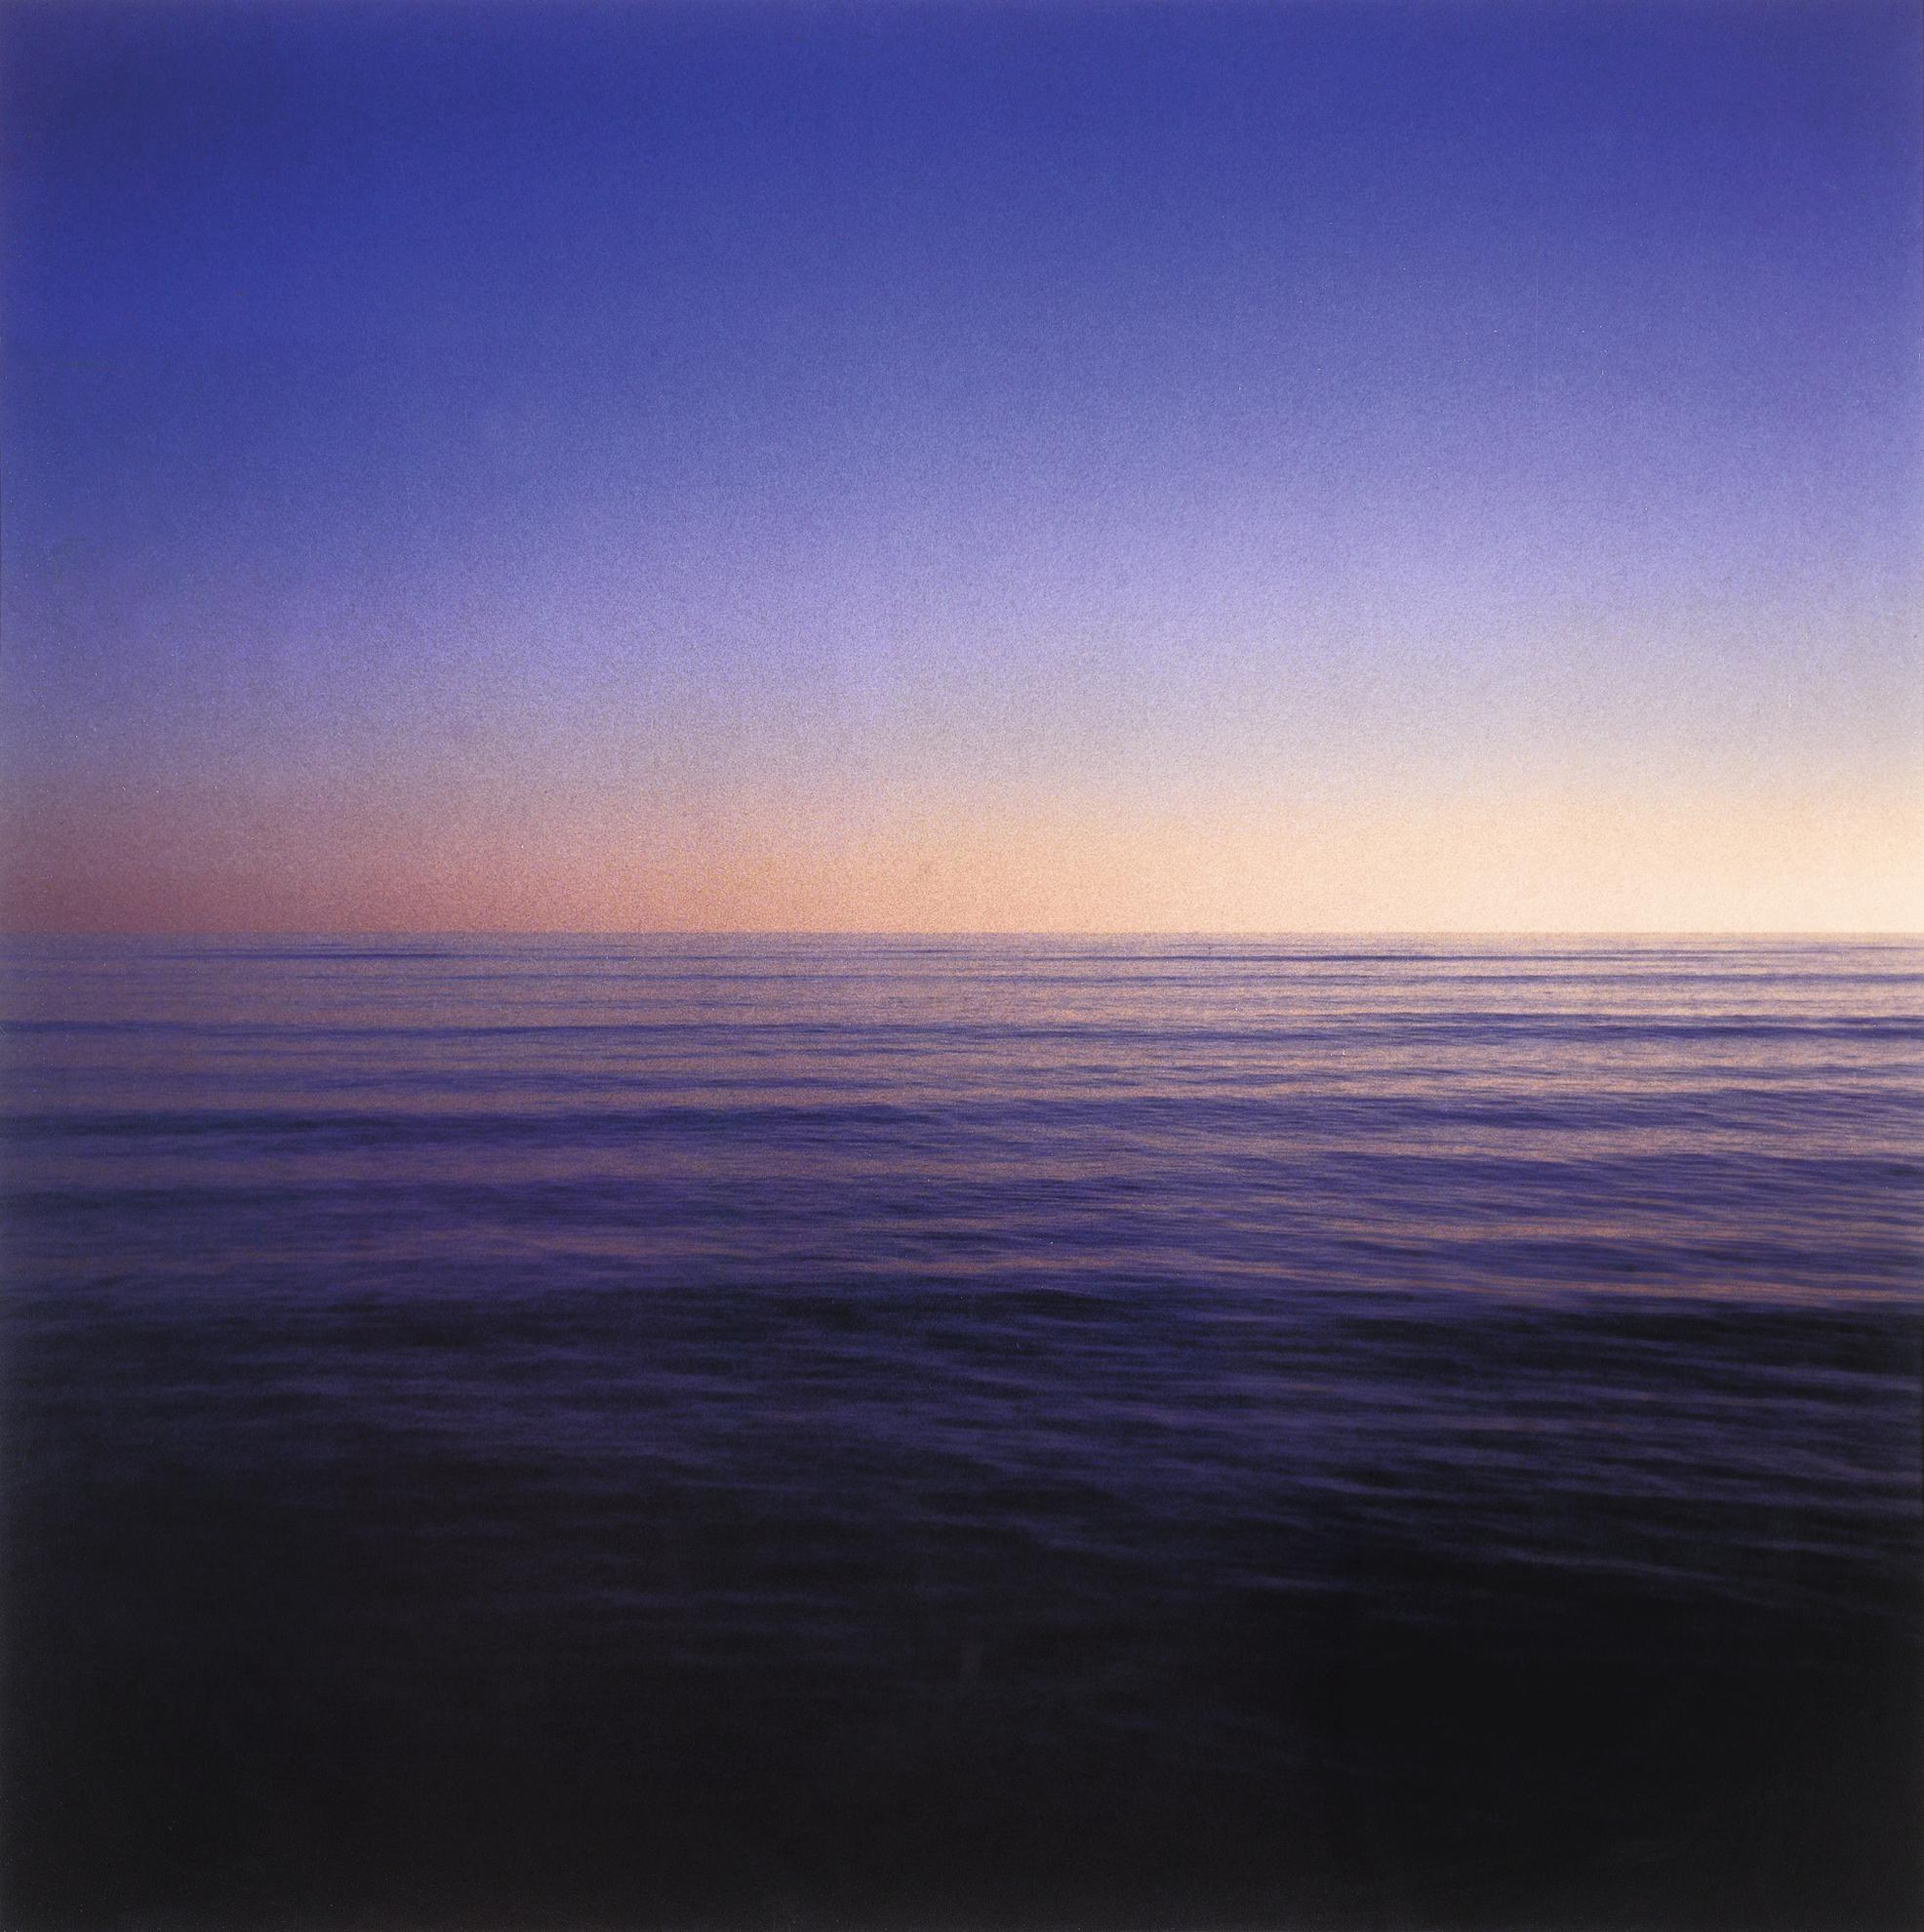 Garry Fabian Miller-Sections Of England: The Sea Horizons #39-1977